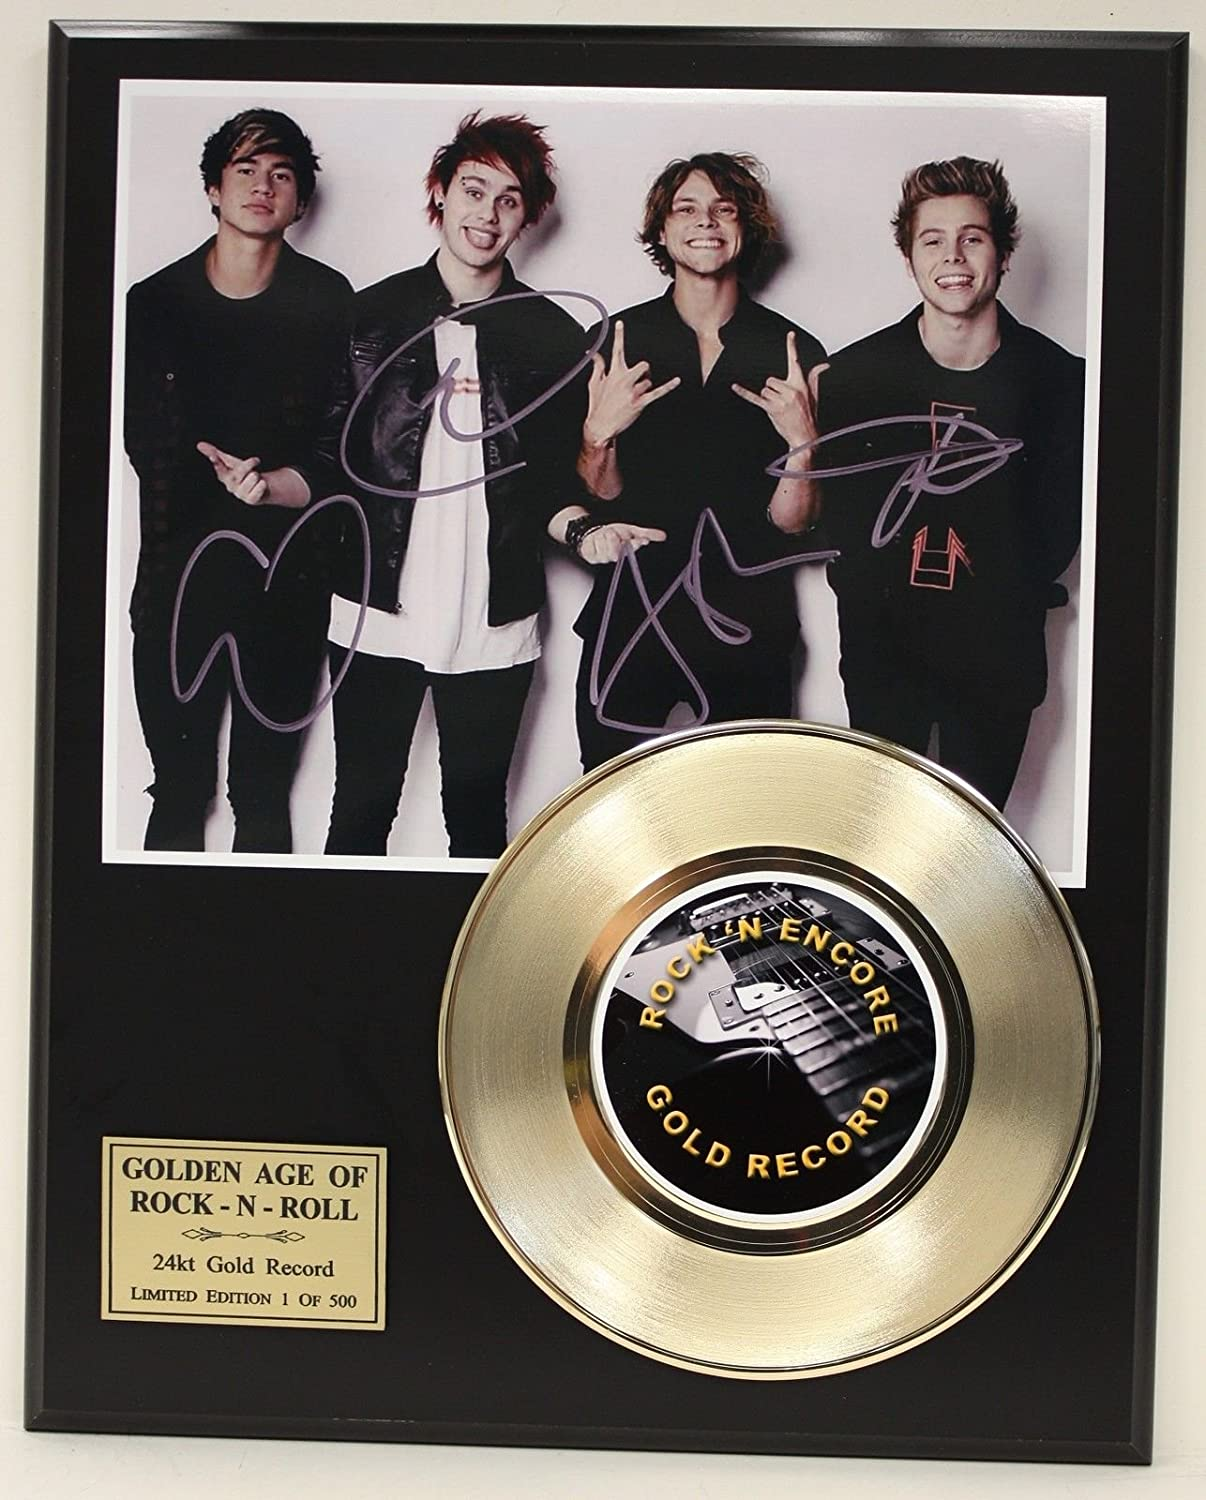 5 SECONDS OF SUMMER GOLD 45 RECORD LTD EDITION SIGNATURE SERIES SHIPS US FREE